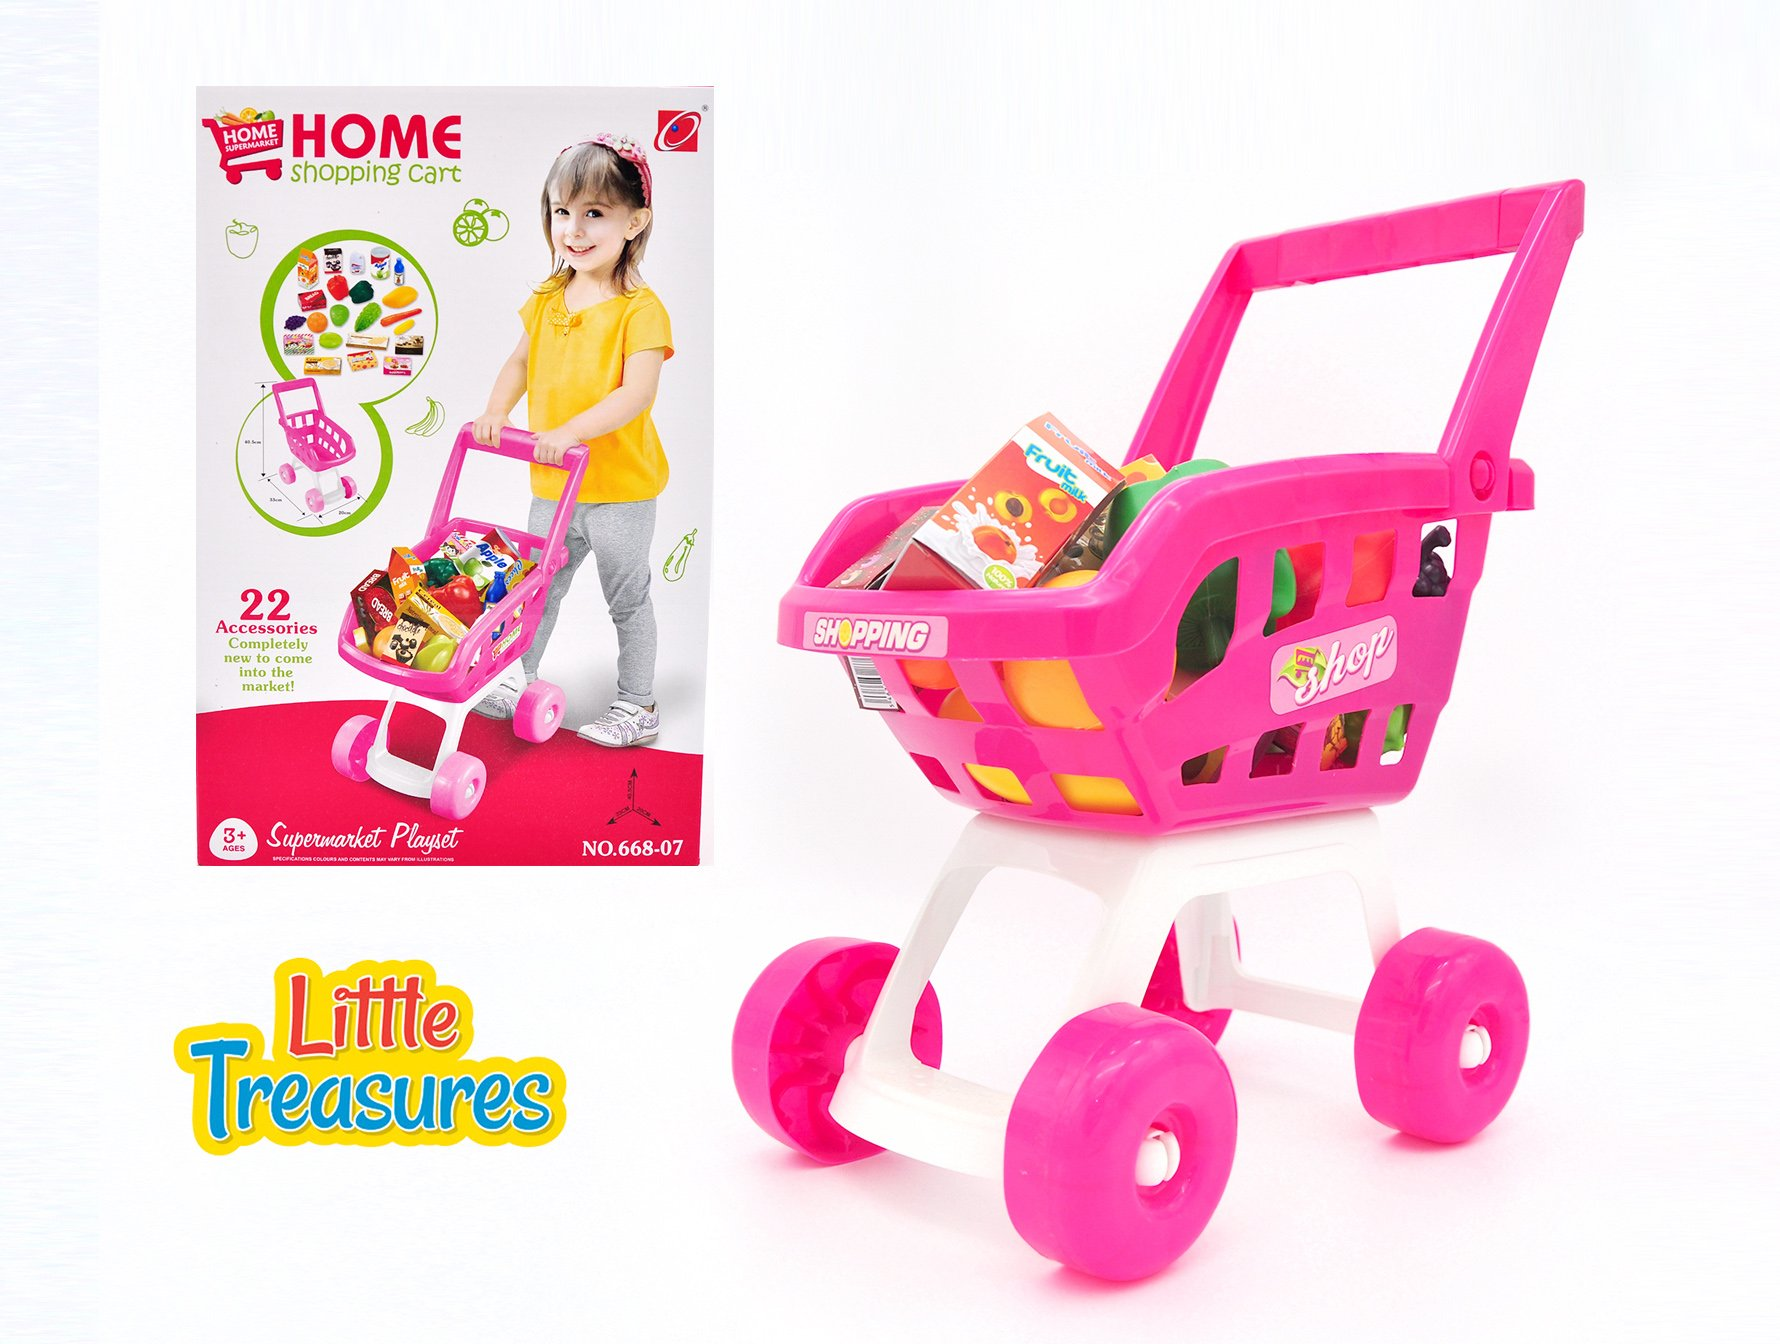 Home Shopping Cart 22-pieced educational fun game for kids 3+ easily movable, handy shopping trolley basket with various toy items including fruits, vegetables, milk carton, cheese box, and more! by Little Treasures